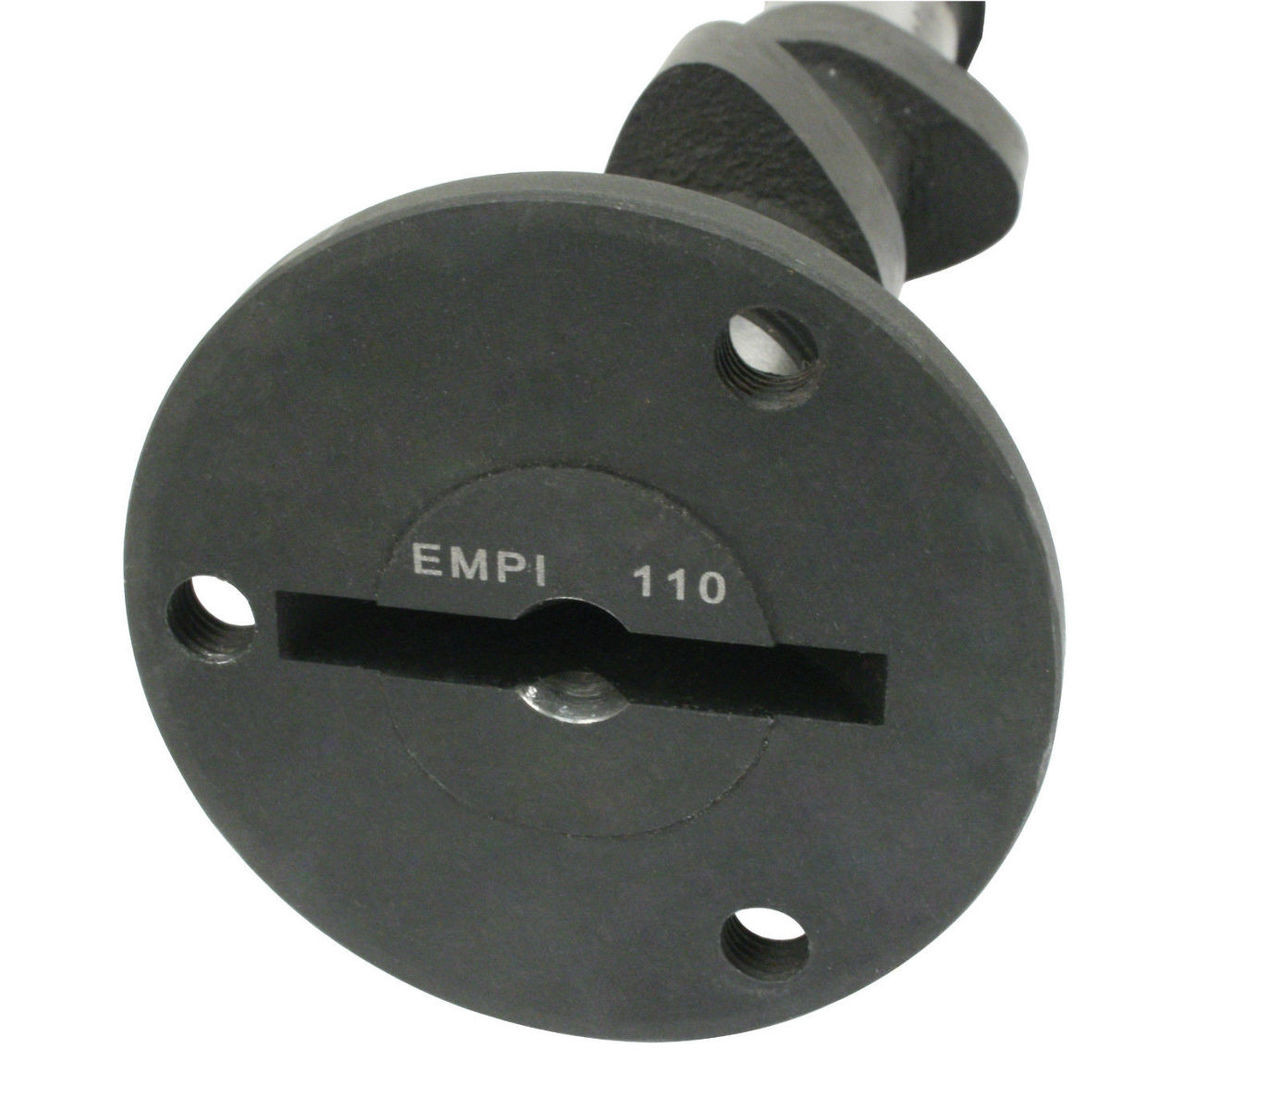 """EMPI VW BUG PERFORMANCE CAM .478"""" LIFT FOR 1.4 OR 1.5 RATIO ROCKERS 22-4065"""